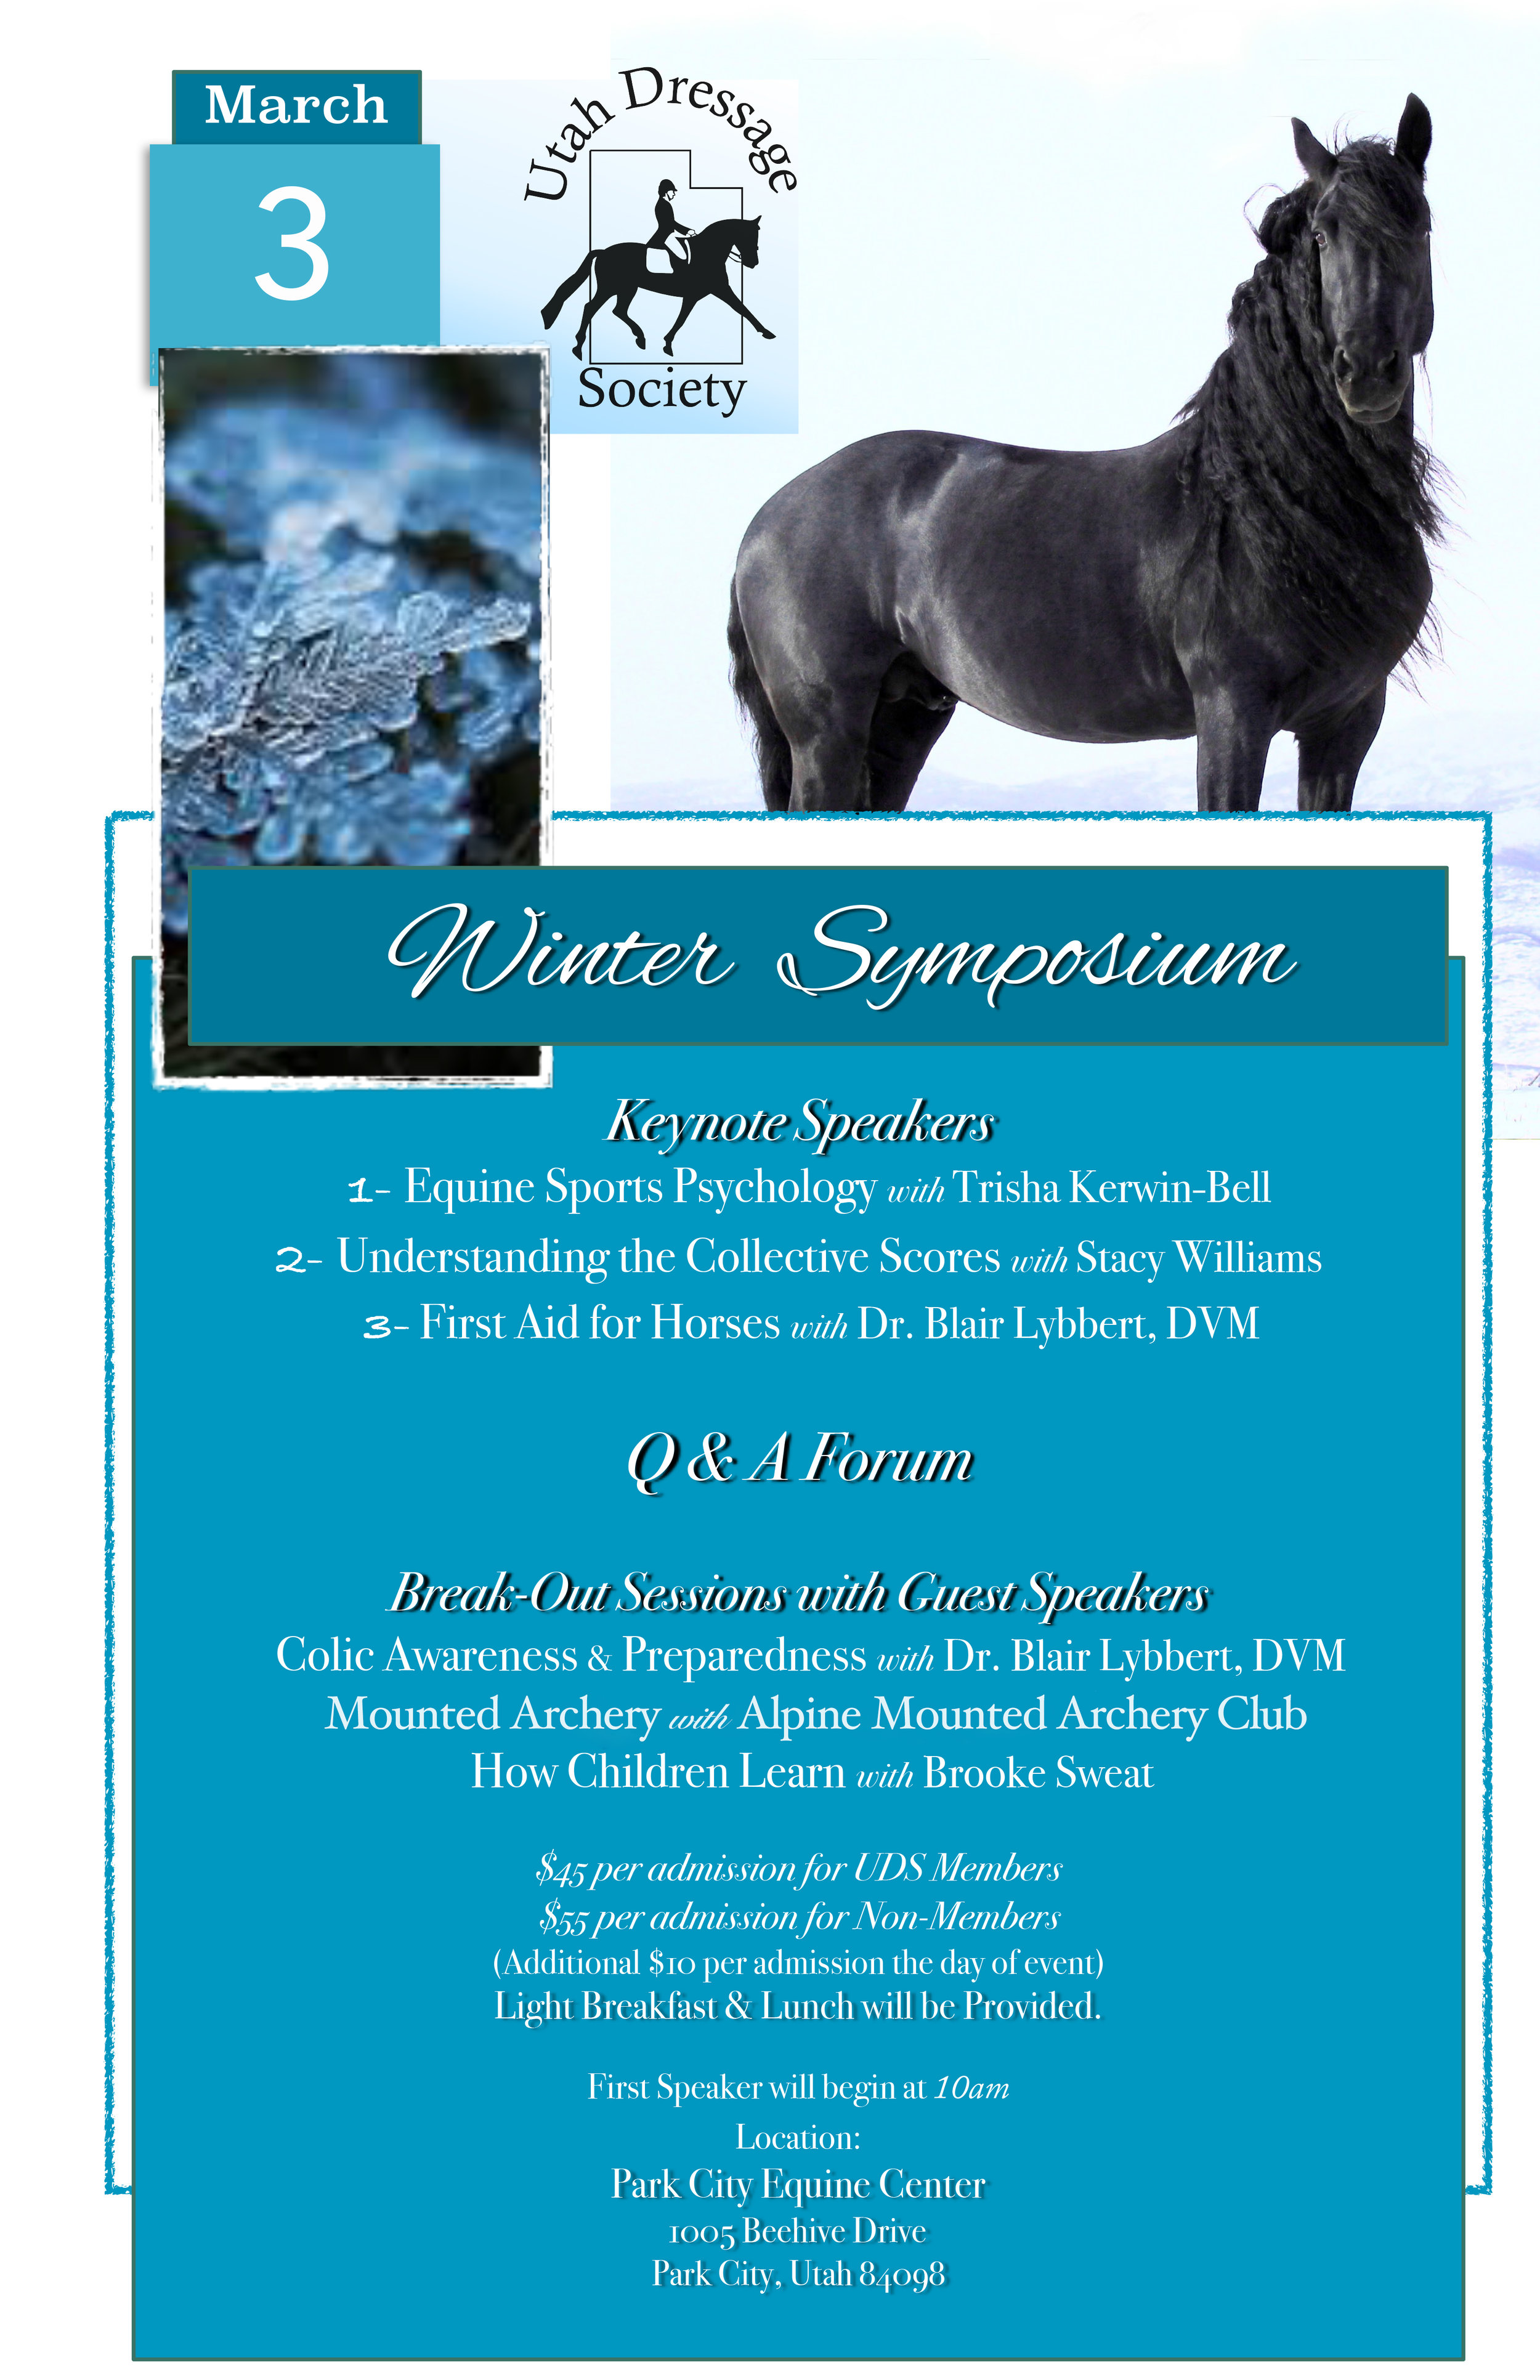 join us! - Saturday,March 3 @ the Park City Equine CenterTopics include equine sports psychology, understanding collective scores, equine first aid, colic awareness & preparedness, mounted archery, and how children learn.Light breakfast and lunch to be provided!UDS Members $45.00 - Non-UDS Members $55.00(at the door add $10 to either price)